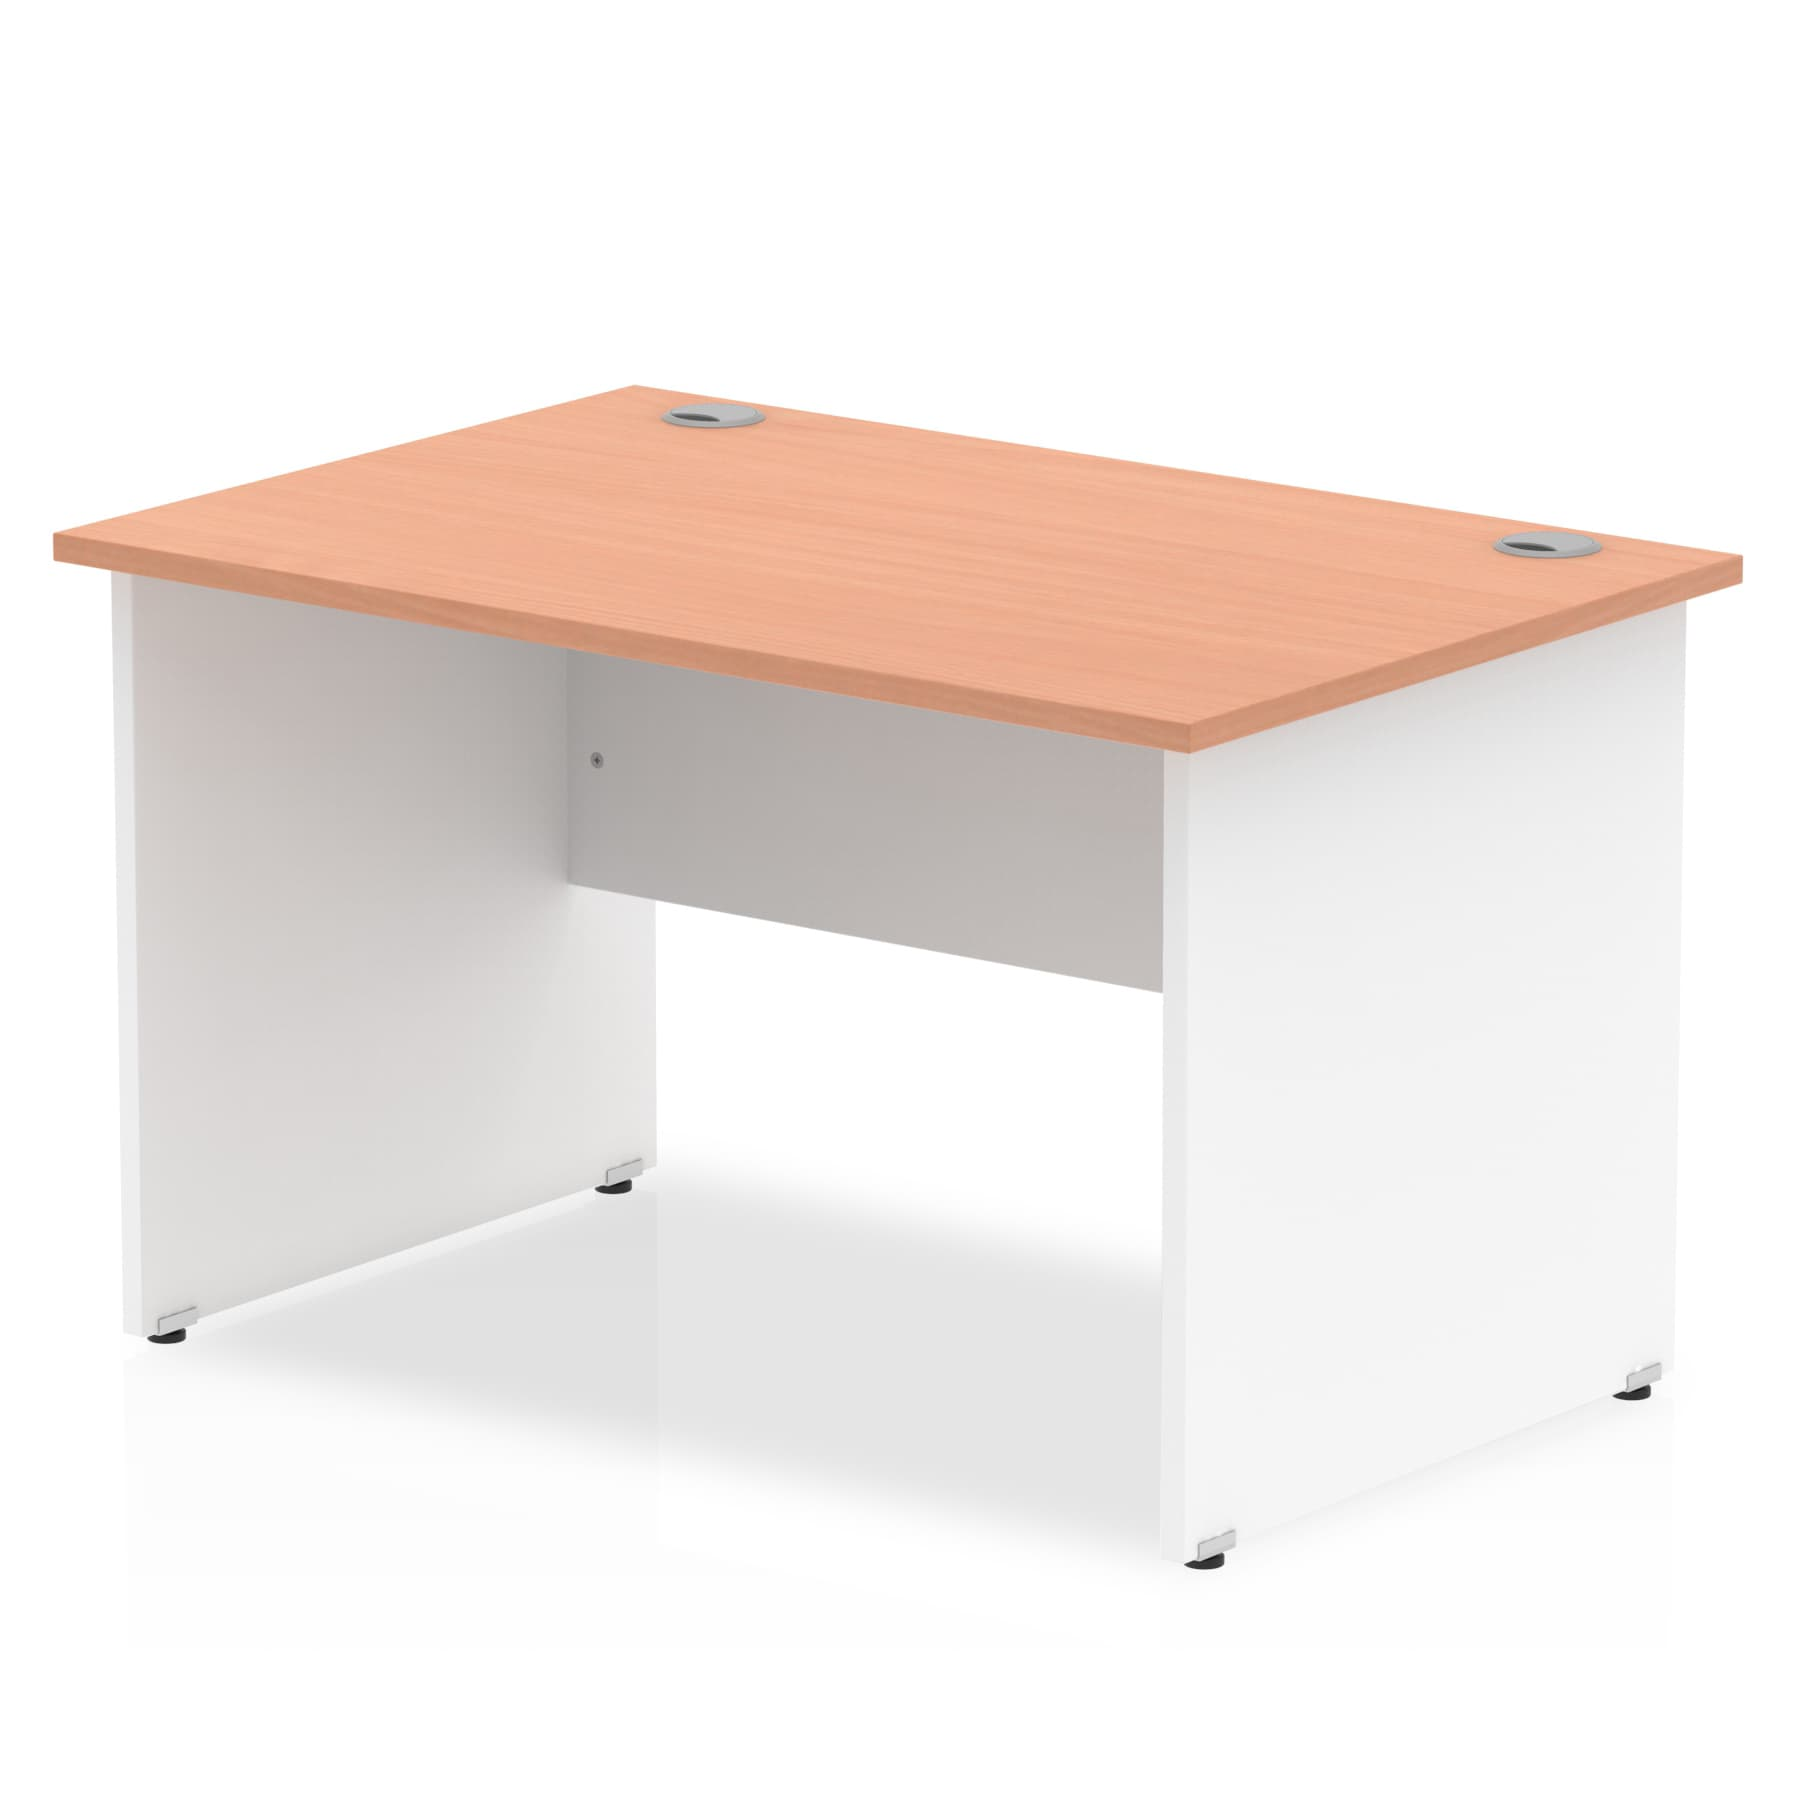 Impulse Panel End 1200 Rectangle Desk with White Panels